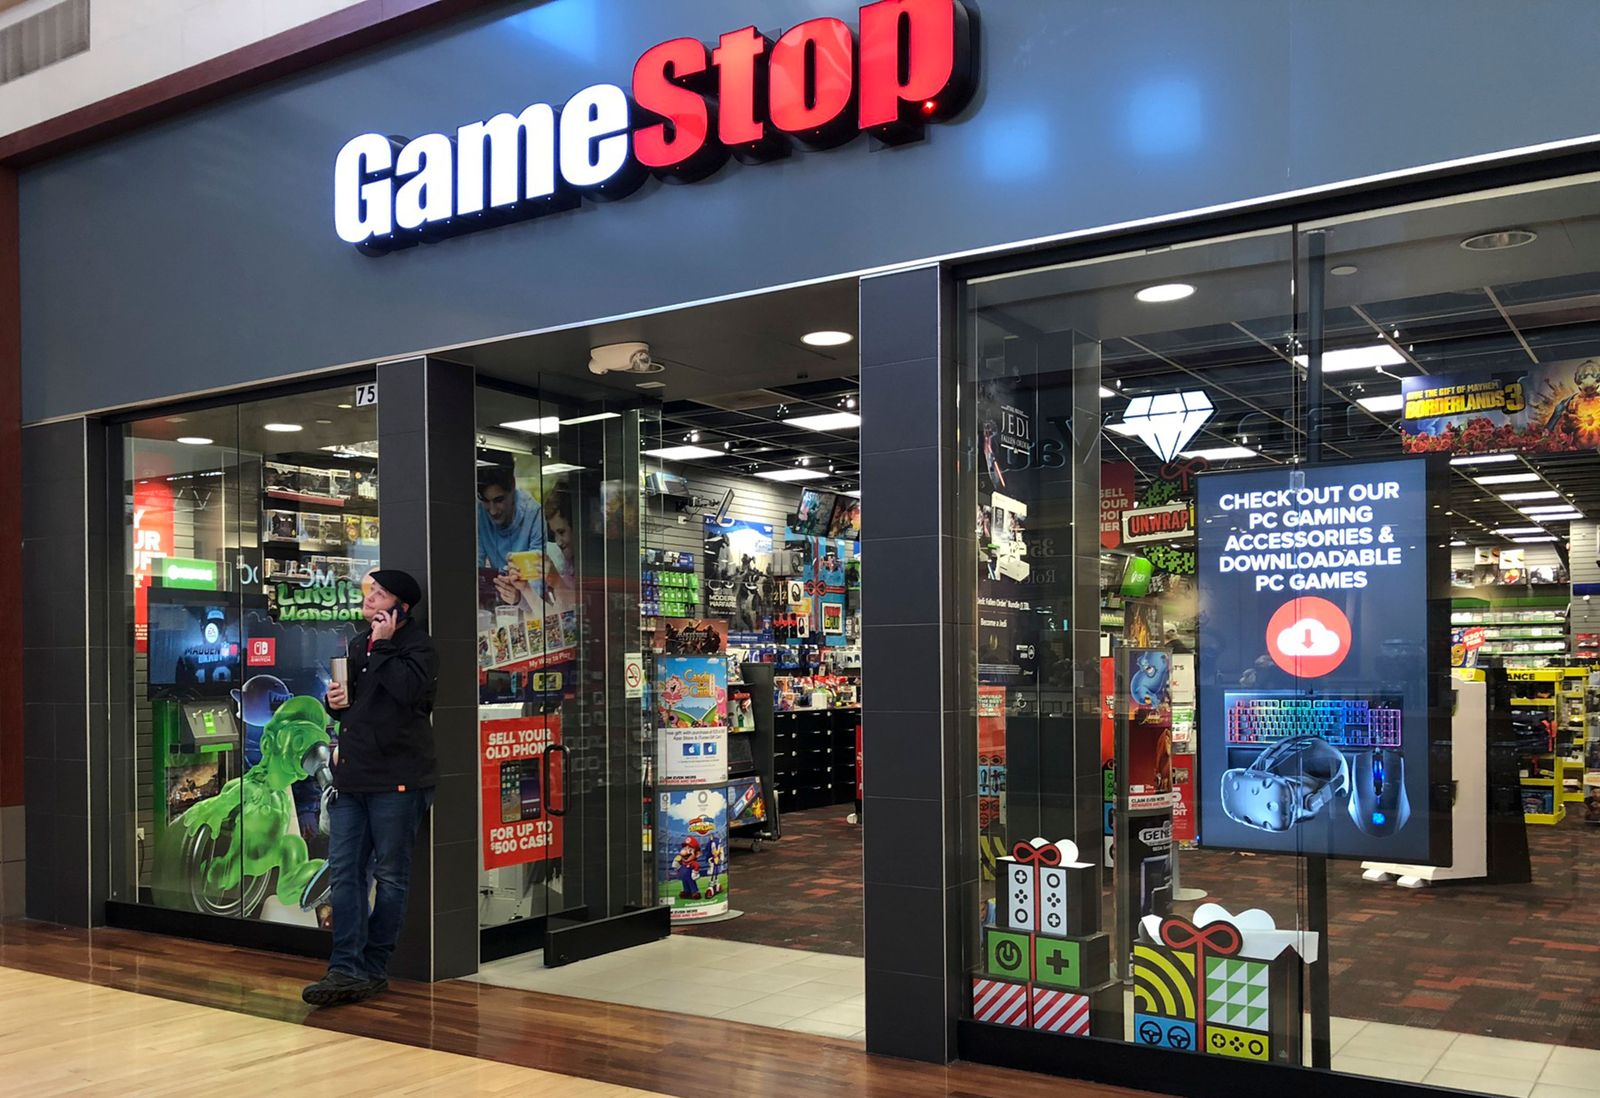 GameStop shares skyrocket from USD 3.25 to USD 347.51 in 10 months, Gurnee, USA - 27 Jan 2021